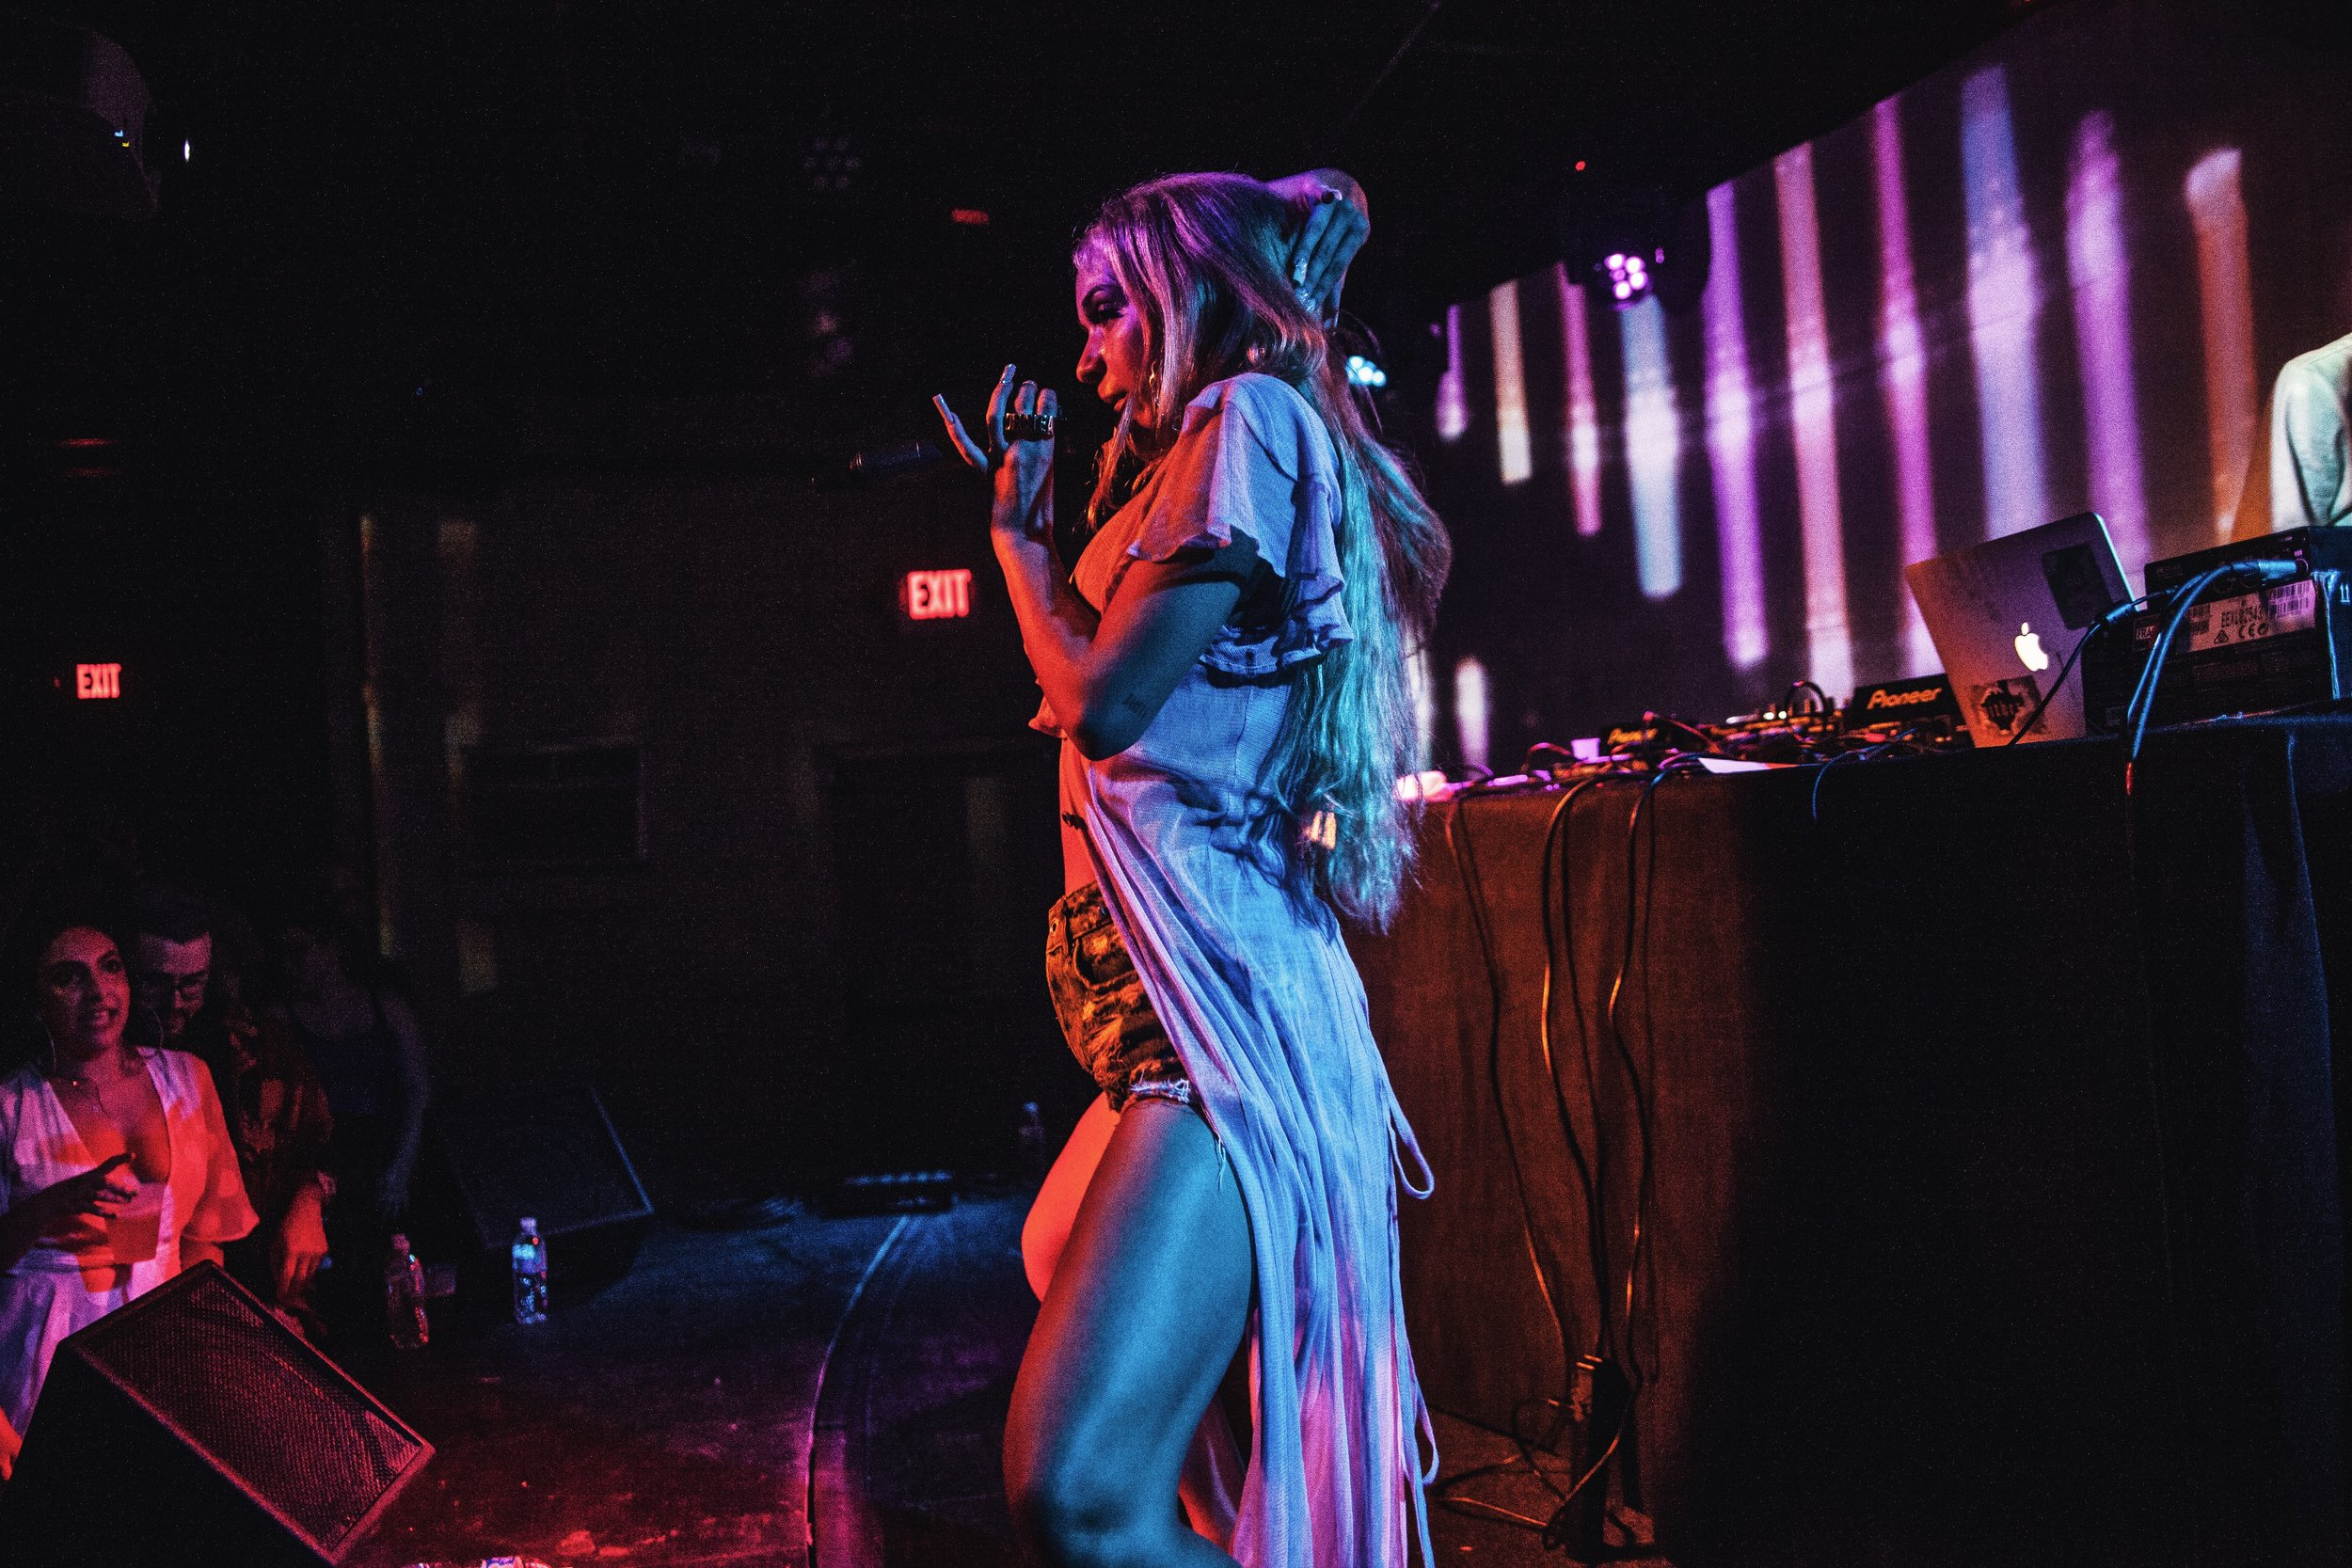 Bad Gyal performing at Empire Control Room in Austin, TX. Photo by Nathan Gibbs.